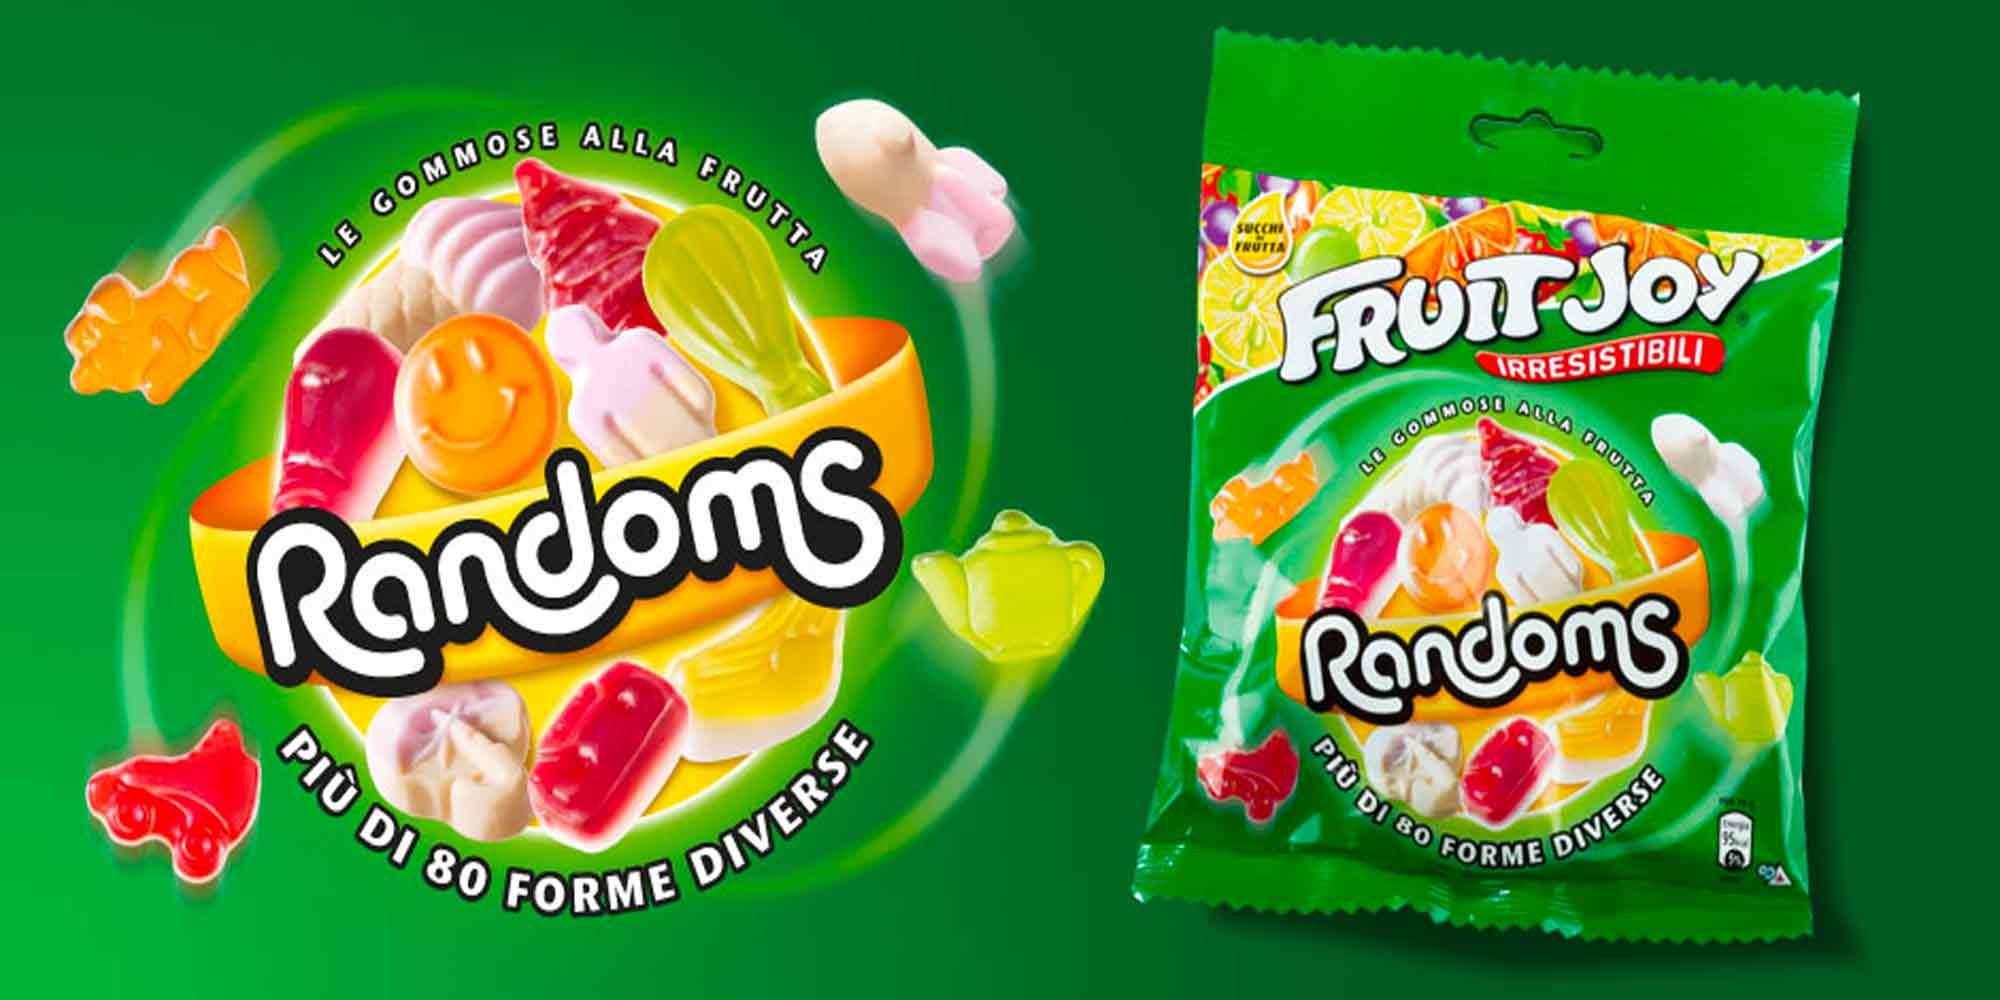 RANDOMS nestle packaging design Fruit Joy